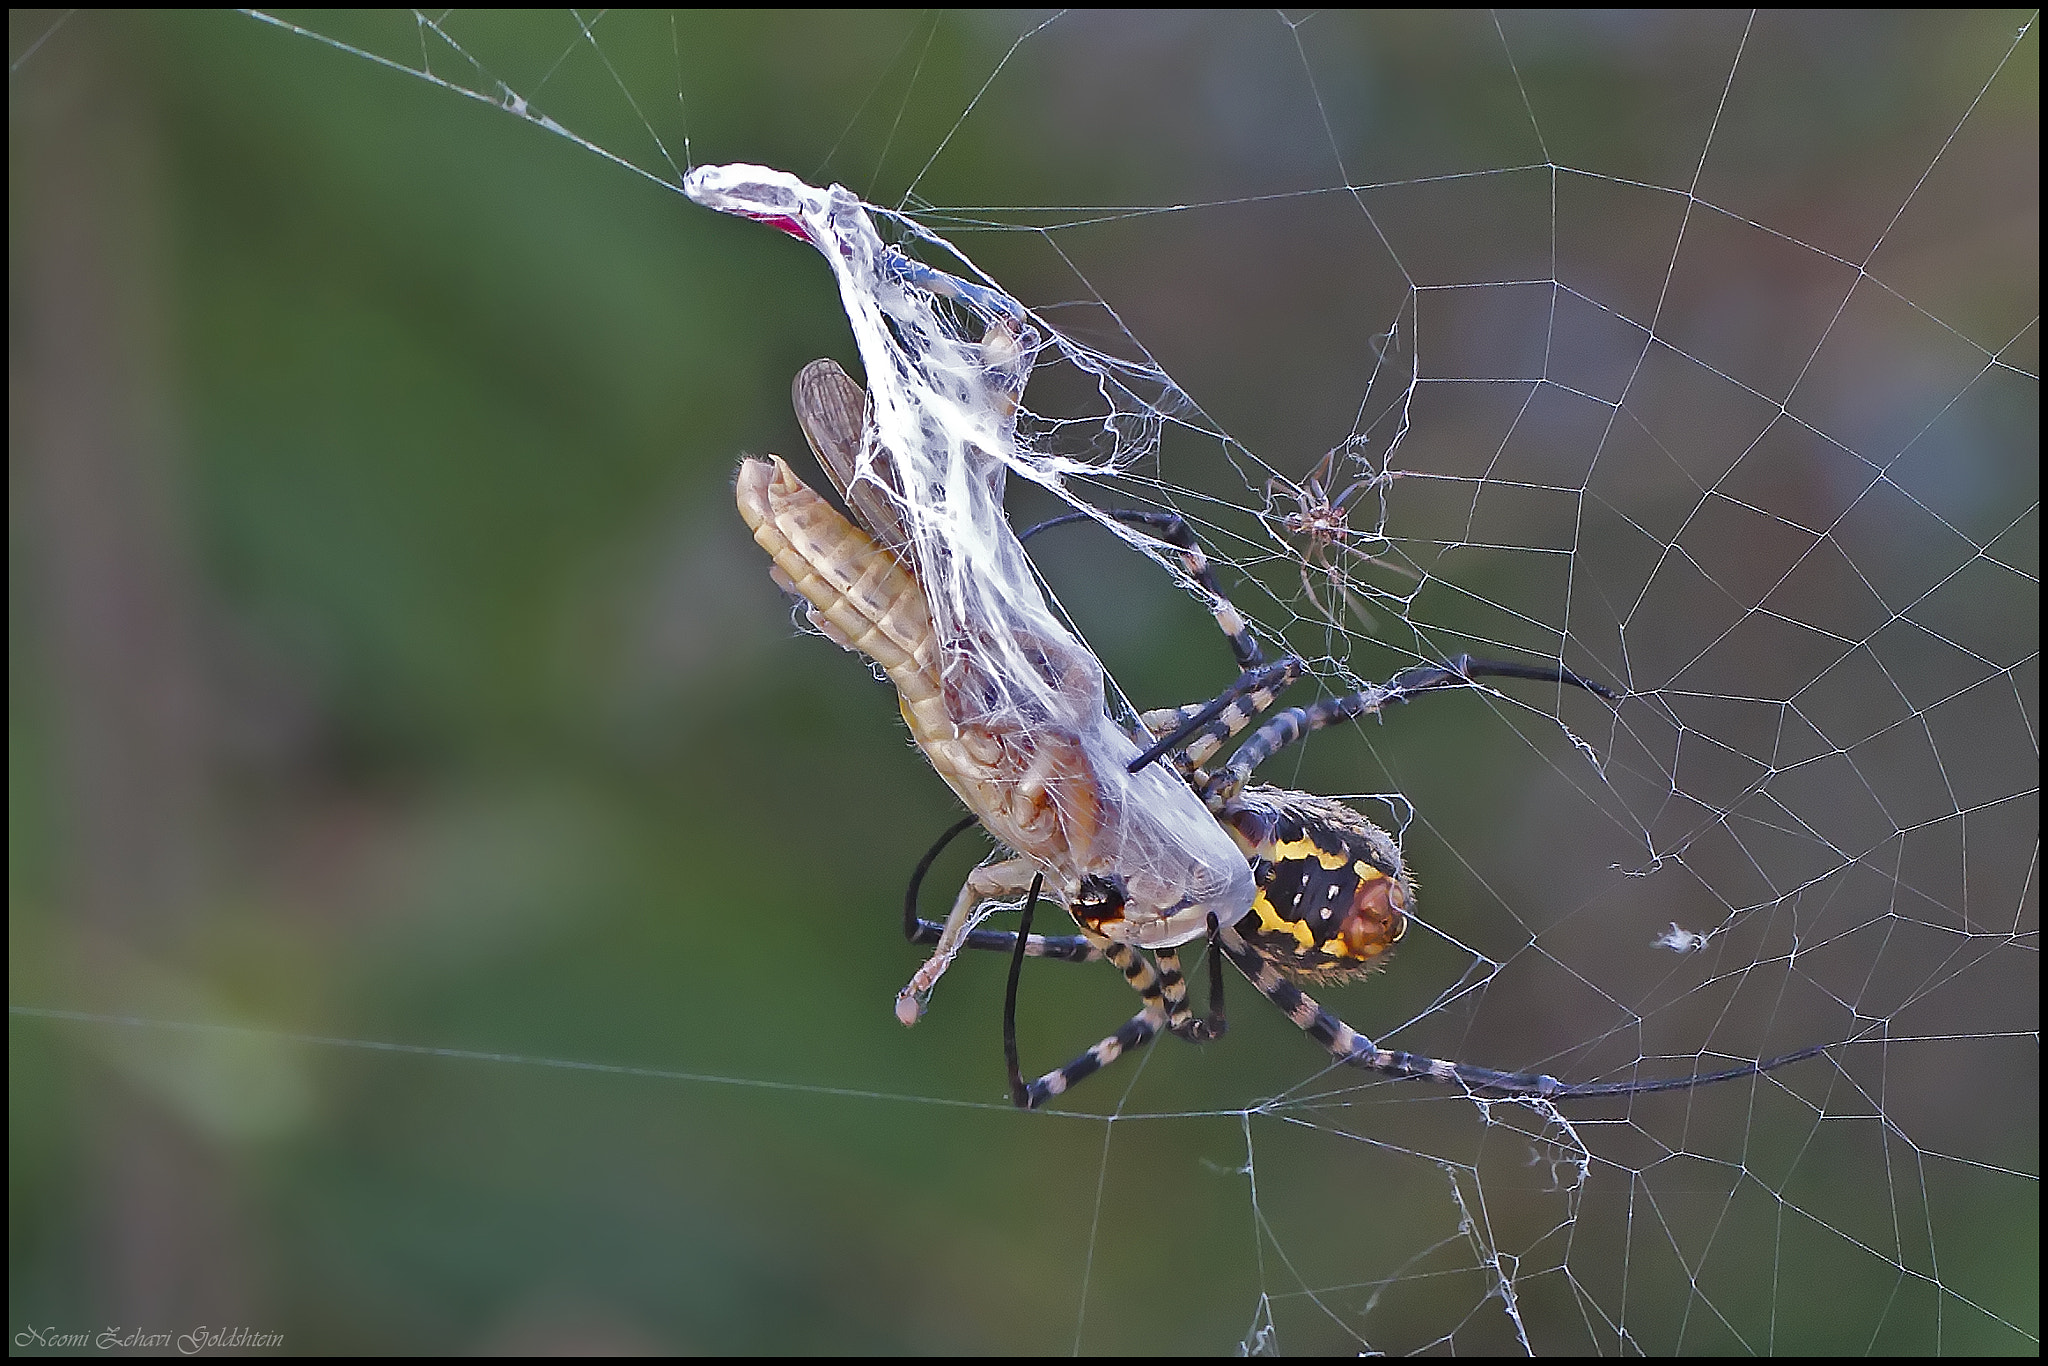 Photograph Spider eating by gneomi on 500px